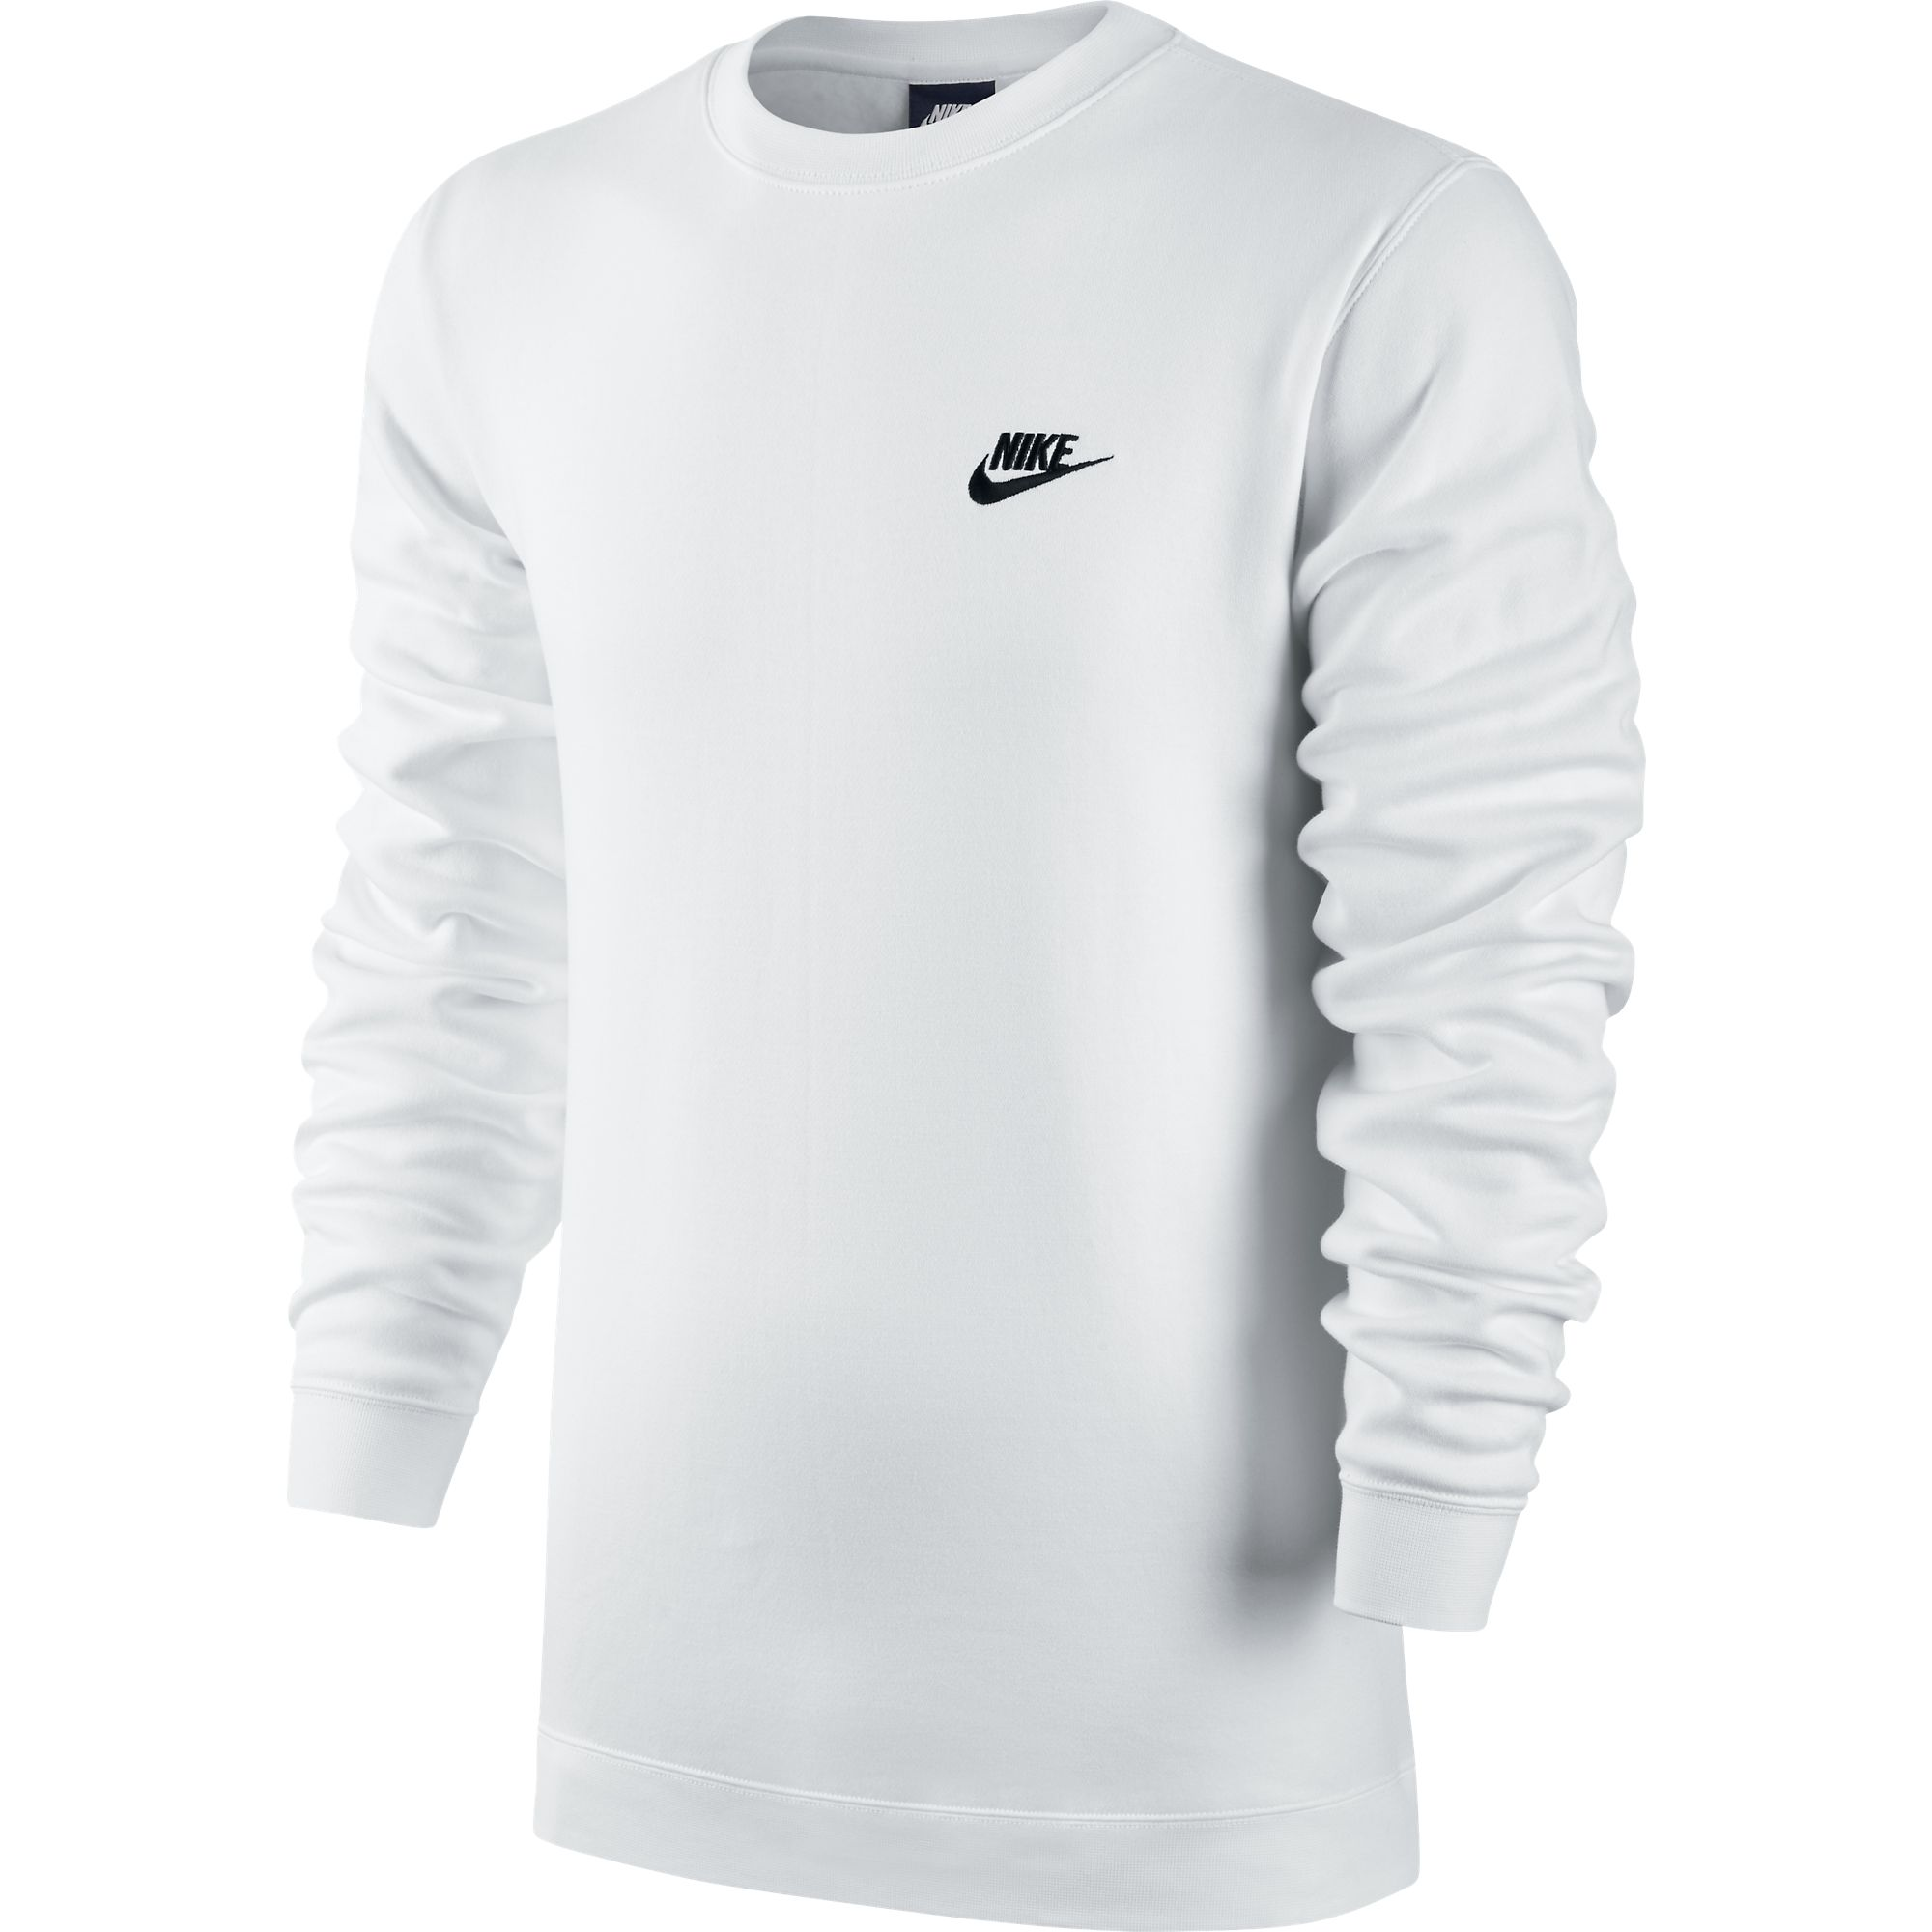 nike club fleece crew neck men 39 s t shirt white black 804340 100 ebay. Black Bedroom Furniture Sets. Home Design Ideas